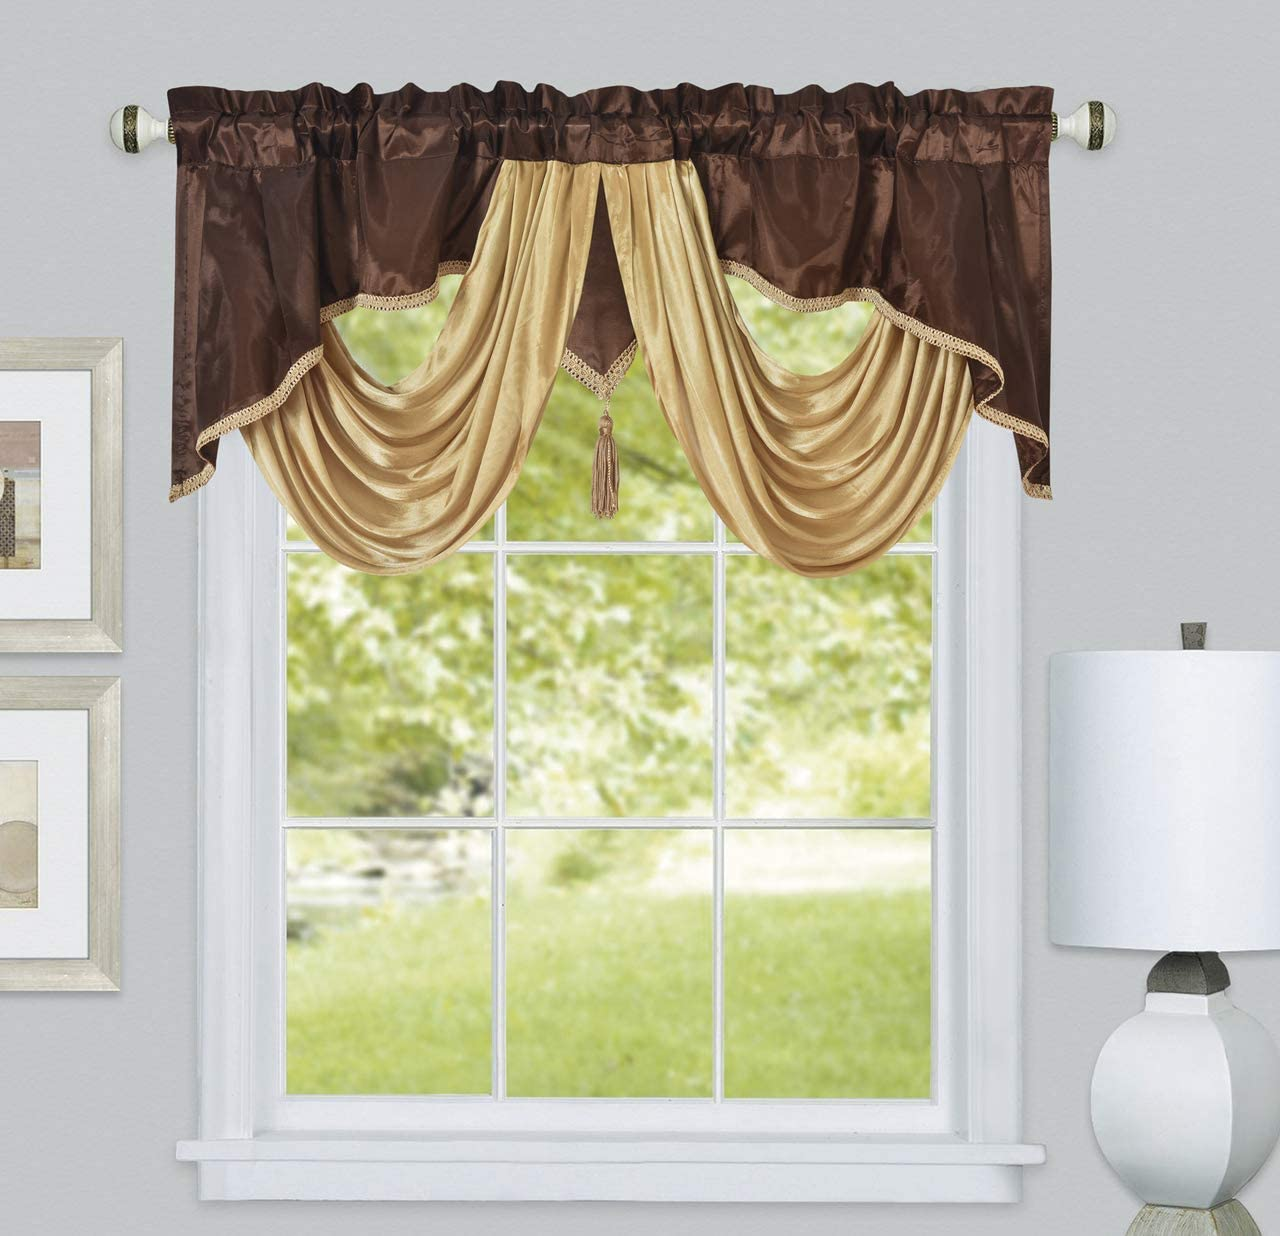 Valarie Fancy Window Valance 54 X 18 Inches Taffeta Fabric With Soft Satin Swag Add Some Royal Luxruy Accent To Your Home Brown Furniture Decor